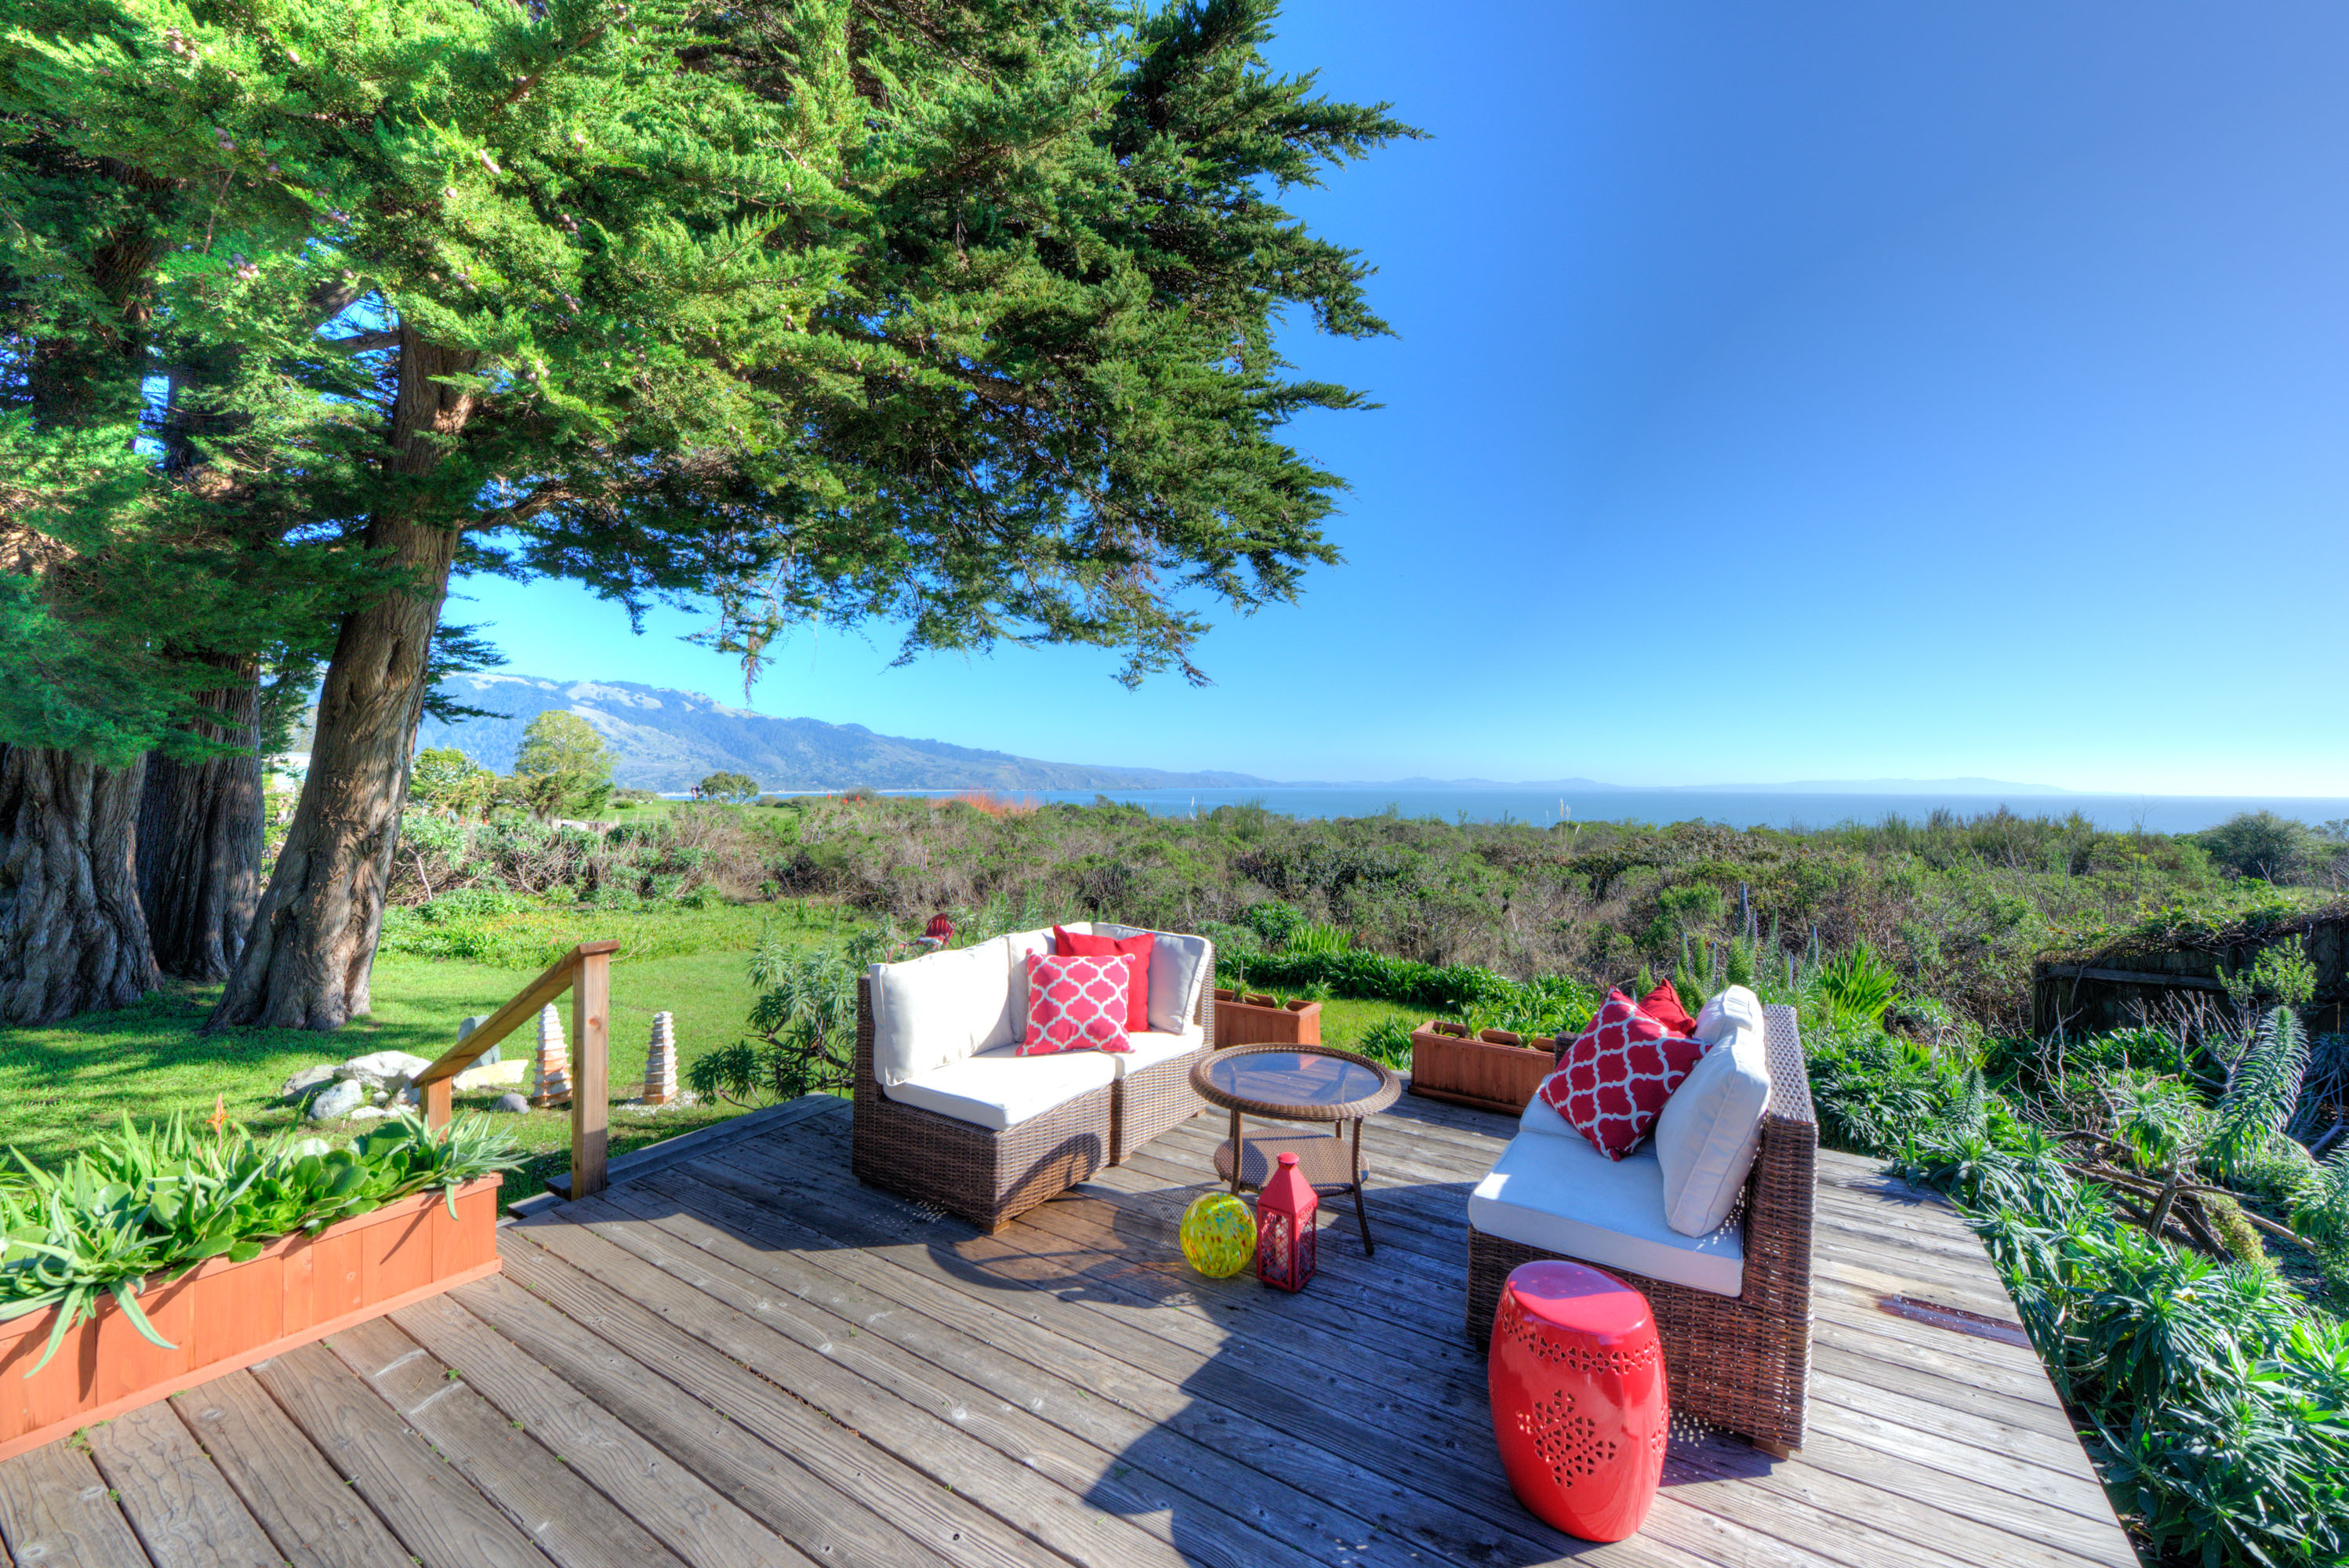 Maison unifamiliale pour l Vente à It's All About the View 125 Dogwood Road Bolinas, Californie 94924 États-Unis